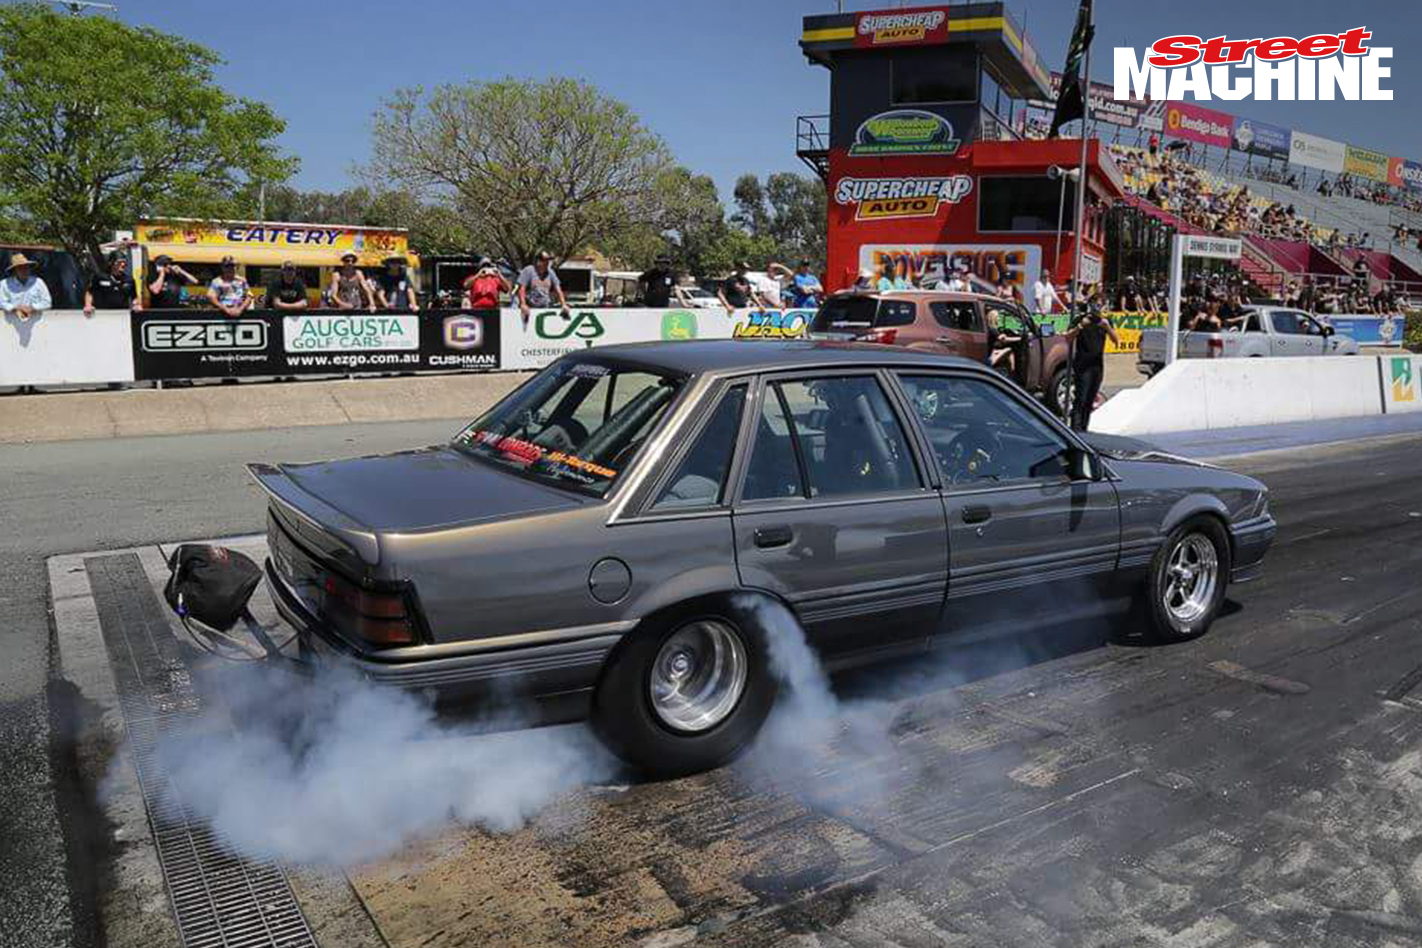 VL Commodore Turbo Drag Car Nw